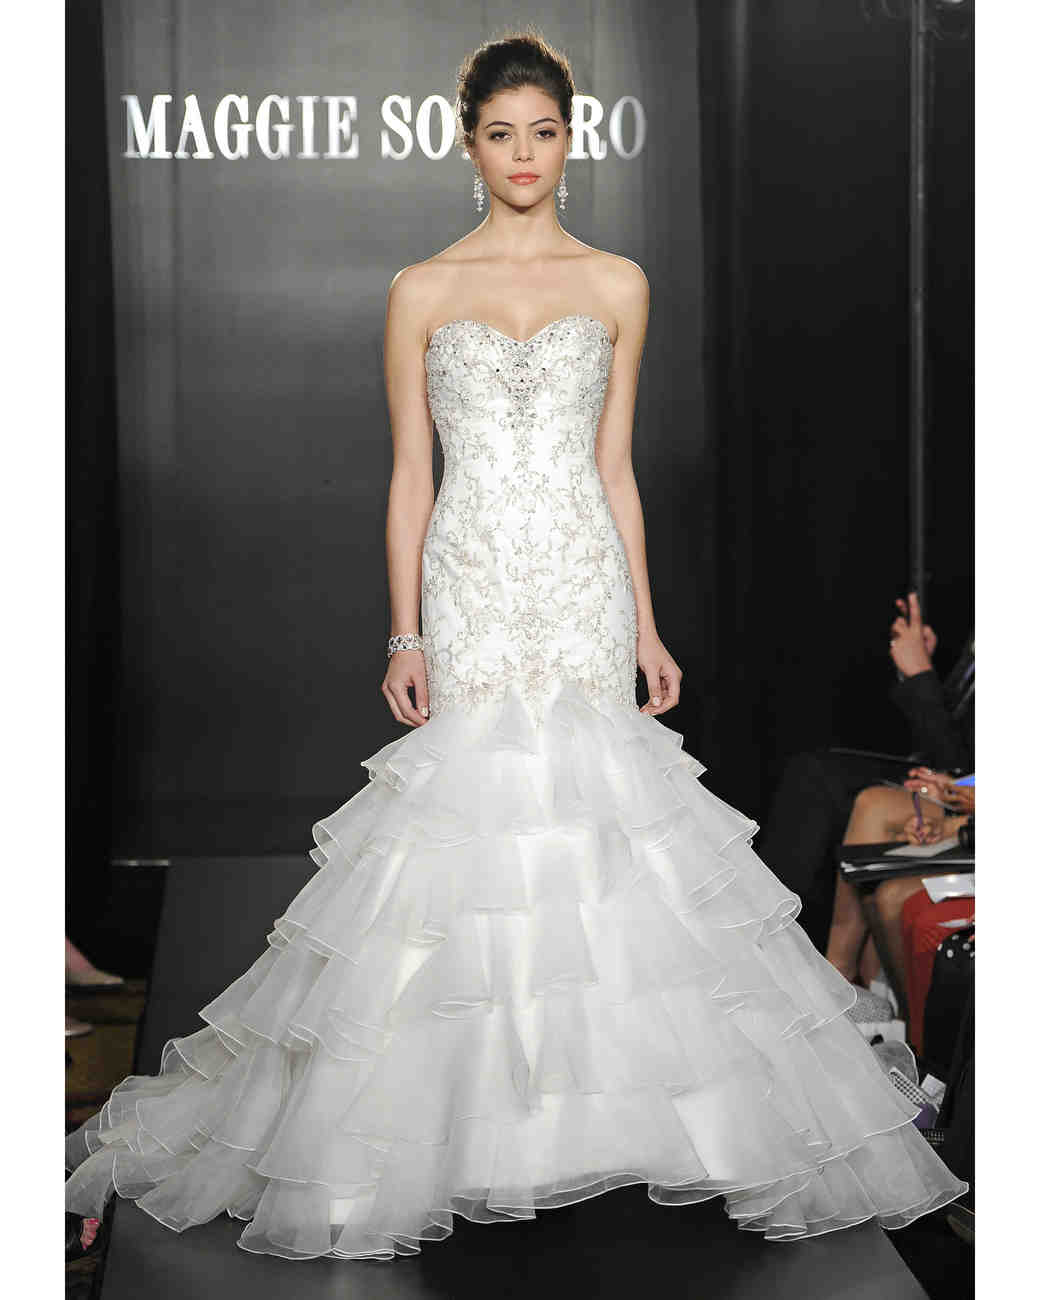 maggie-sottero-spring2013-wd108745-006.jpg